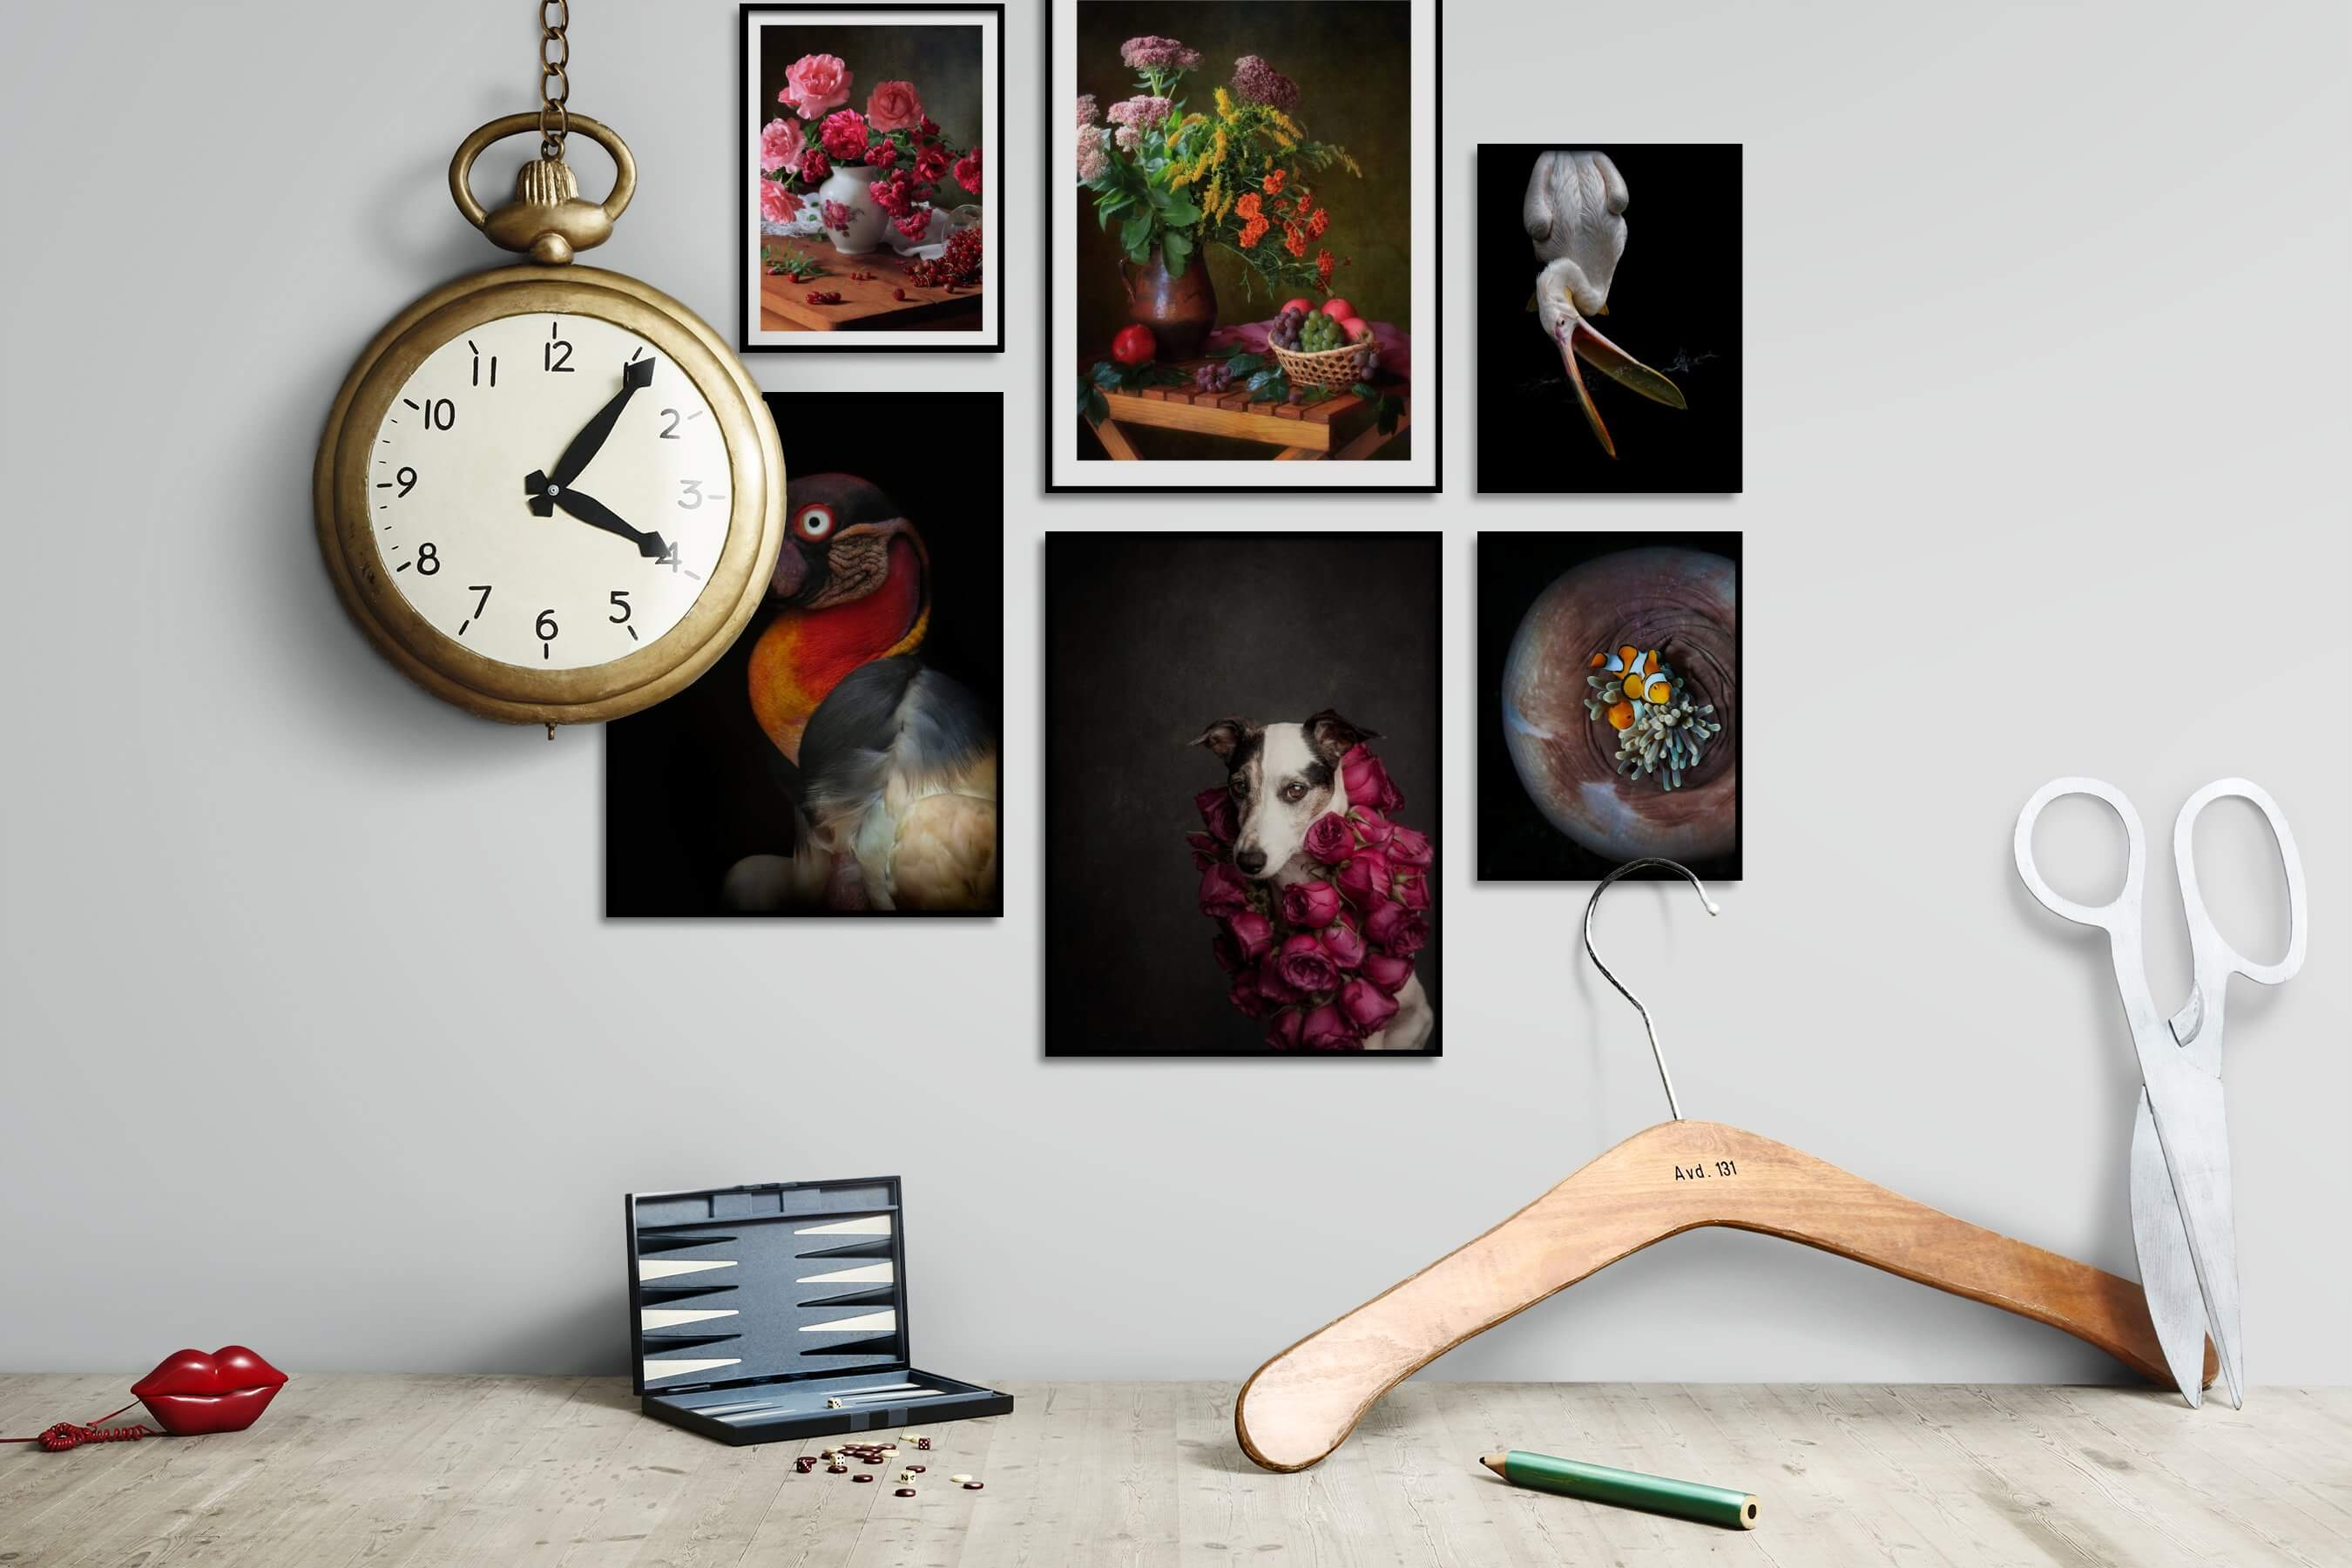 Gallery wall idea with six framed pictures arranged on a wall depicting Flowers & Plants, Vintage, Dark Tones, For the Moderate, Animals, and For the Minimalist